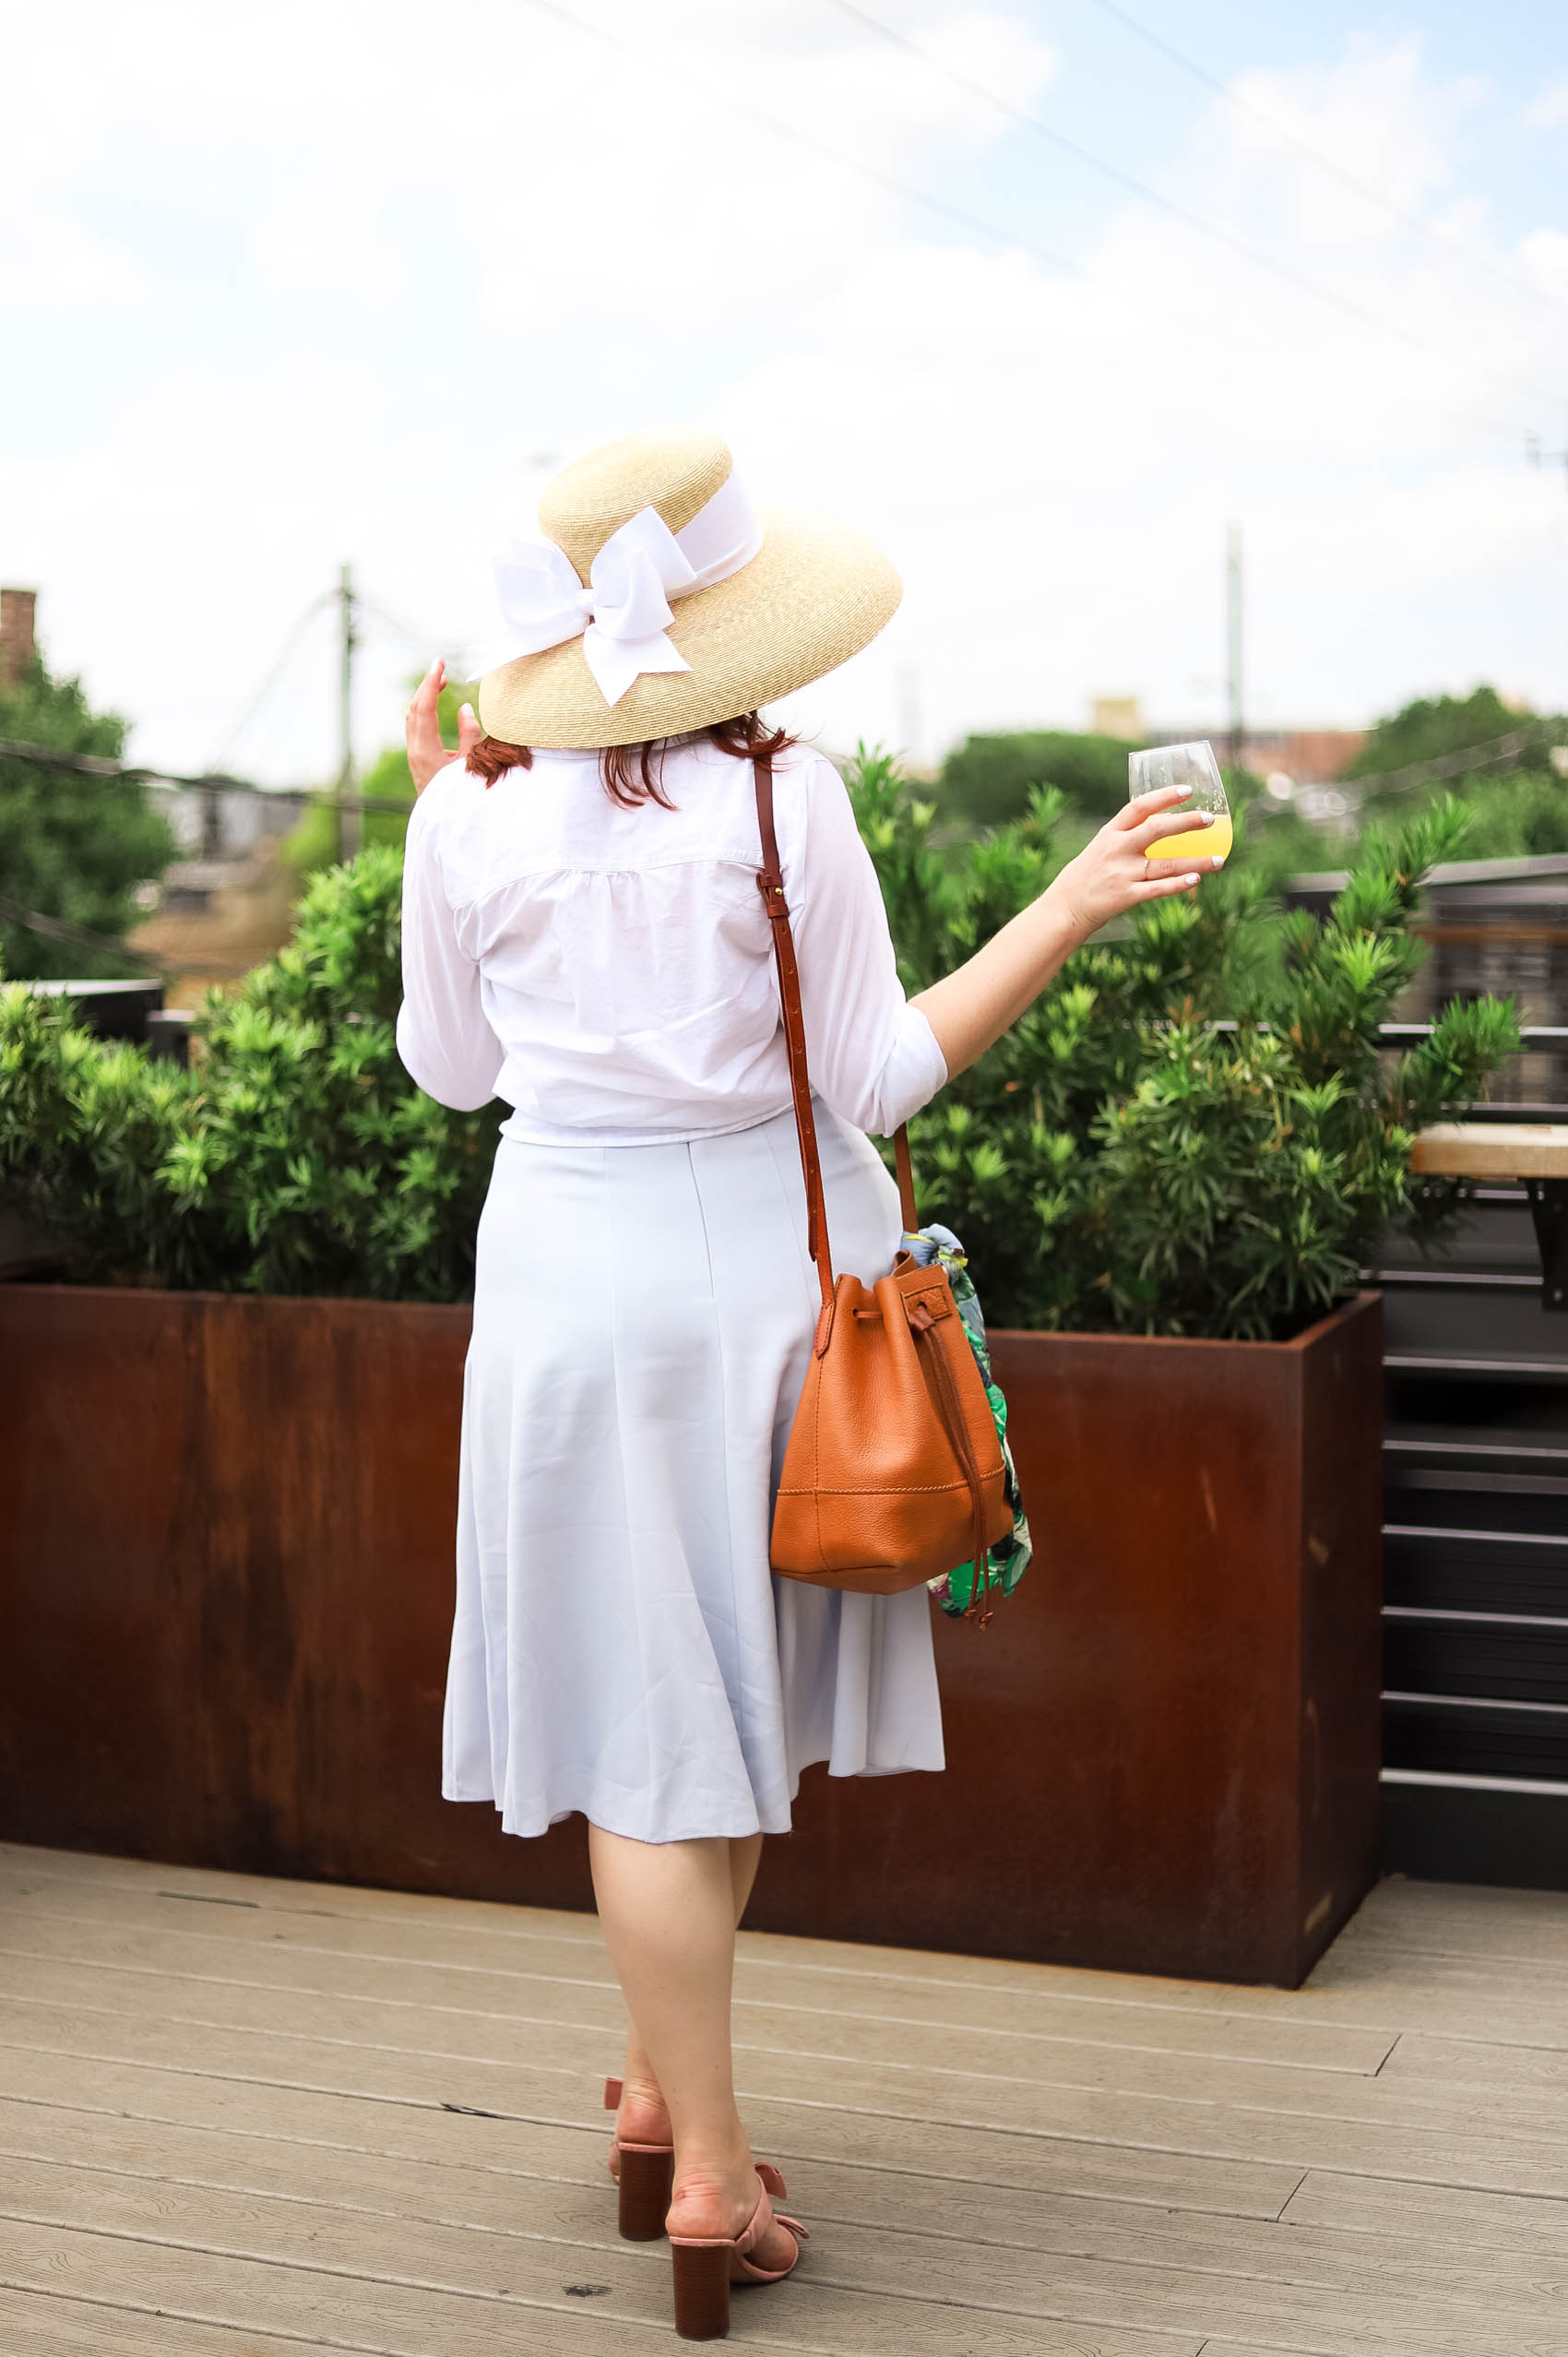 Blogger shares story about how to mend a broken relationship while posting with hat with a white bow, knee-length blue skirt, and a bucket bag.